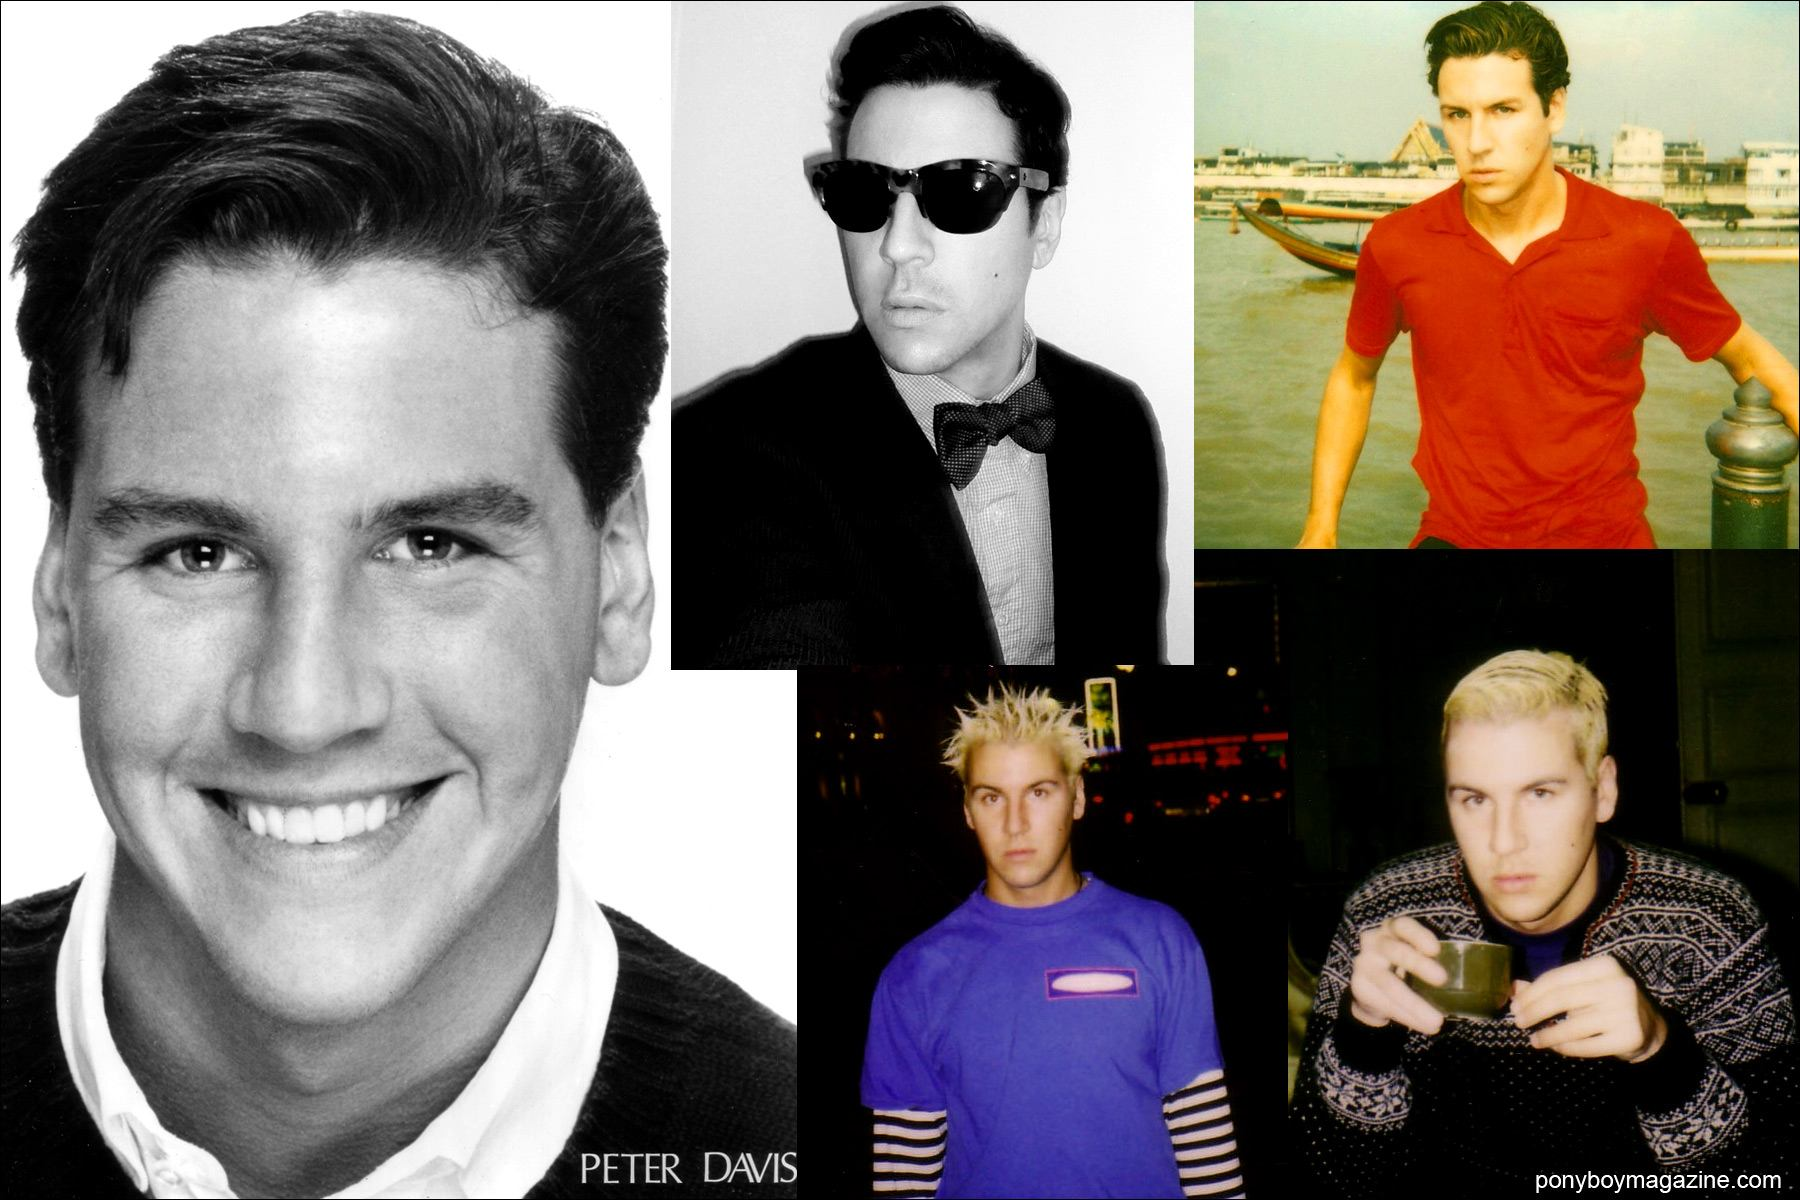 Snapshots of a young Peter Davis. Ponyboy Magazine.